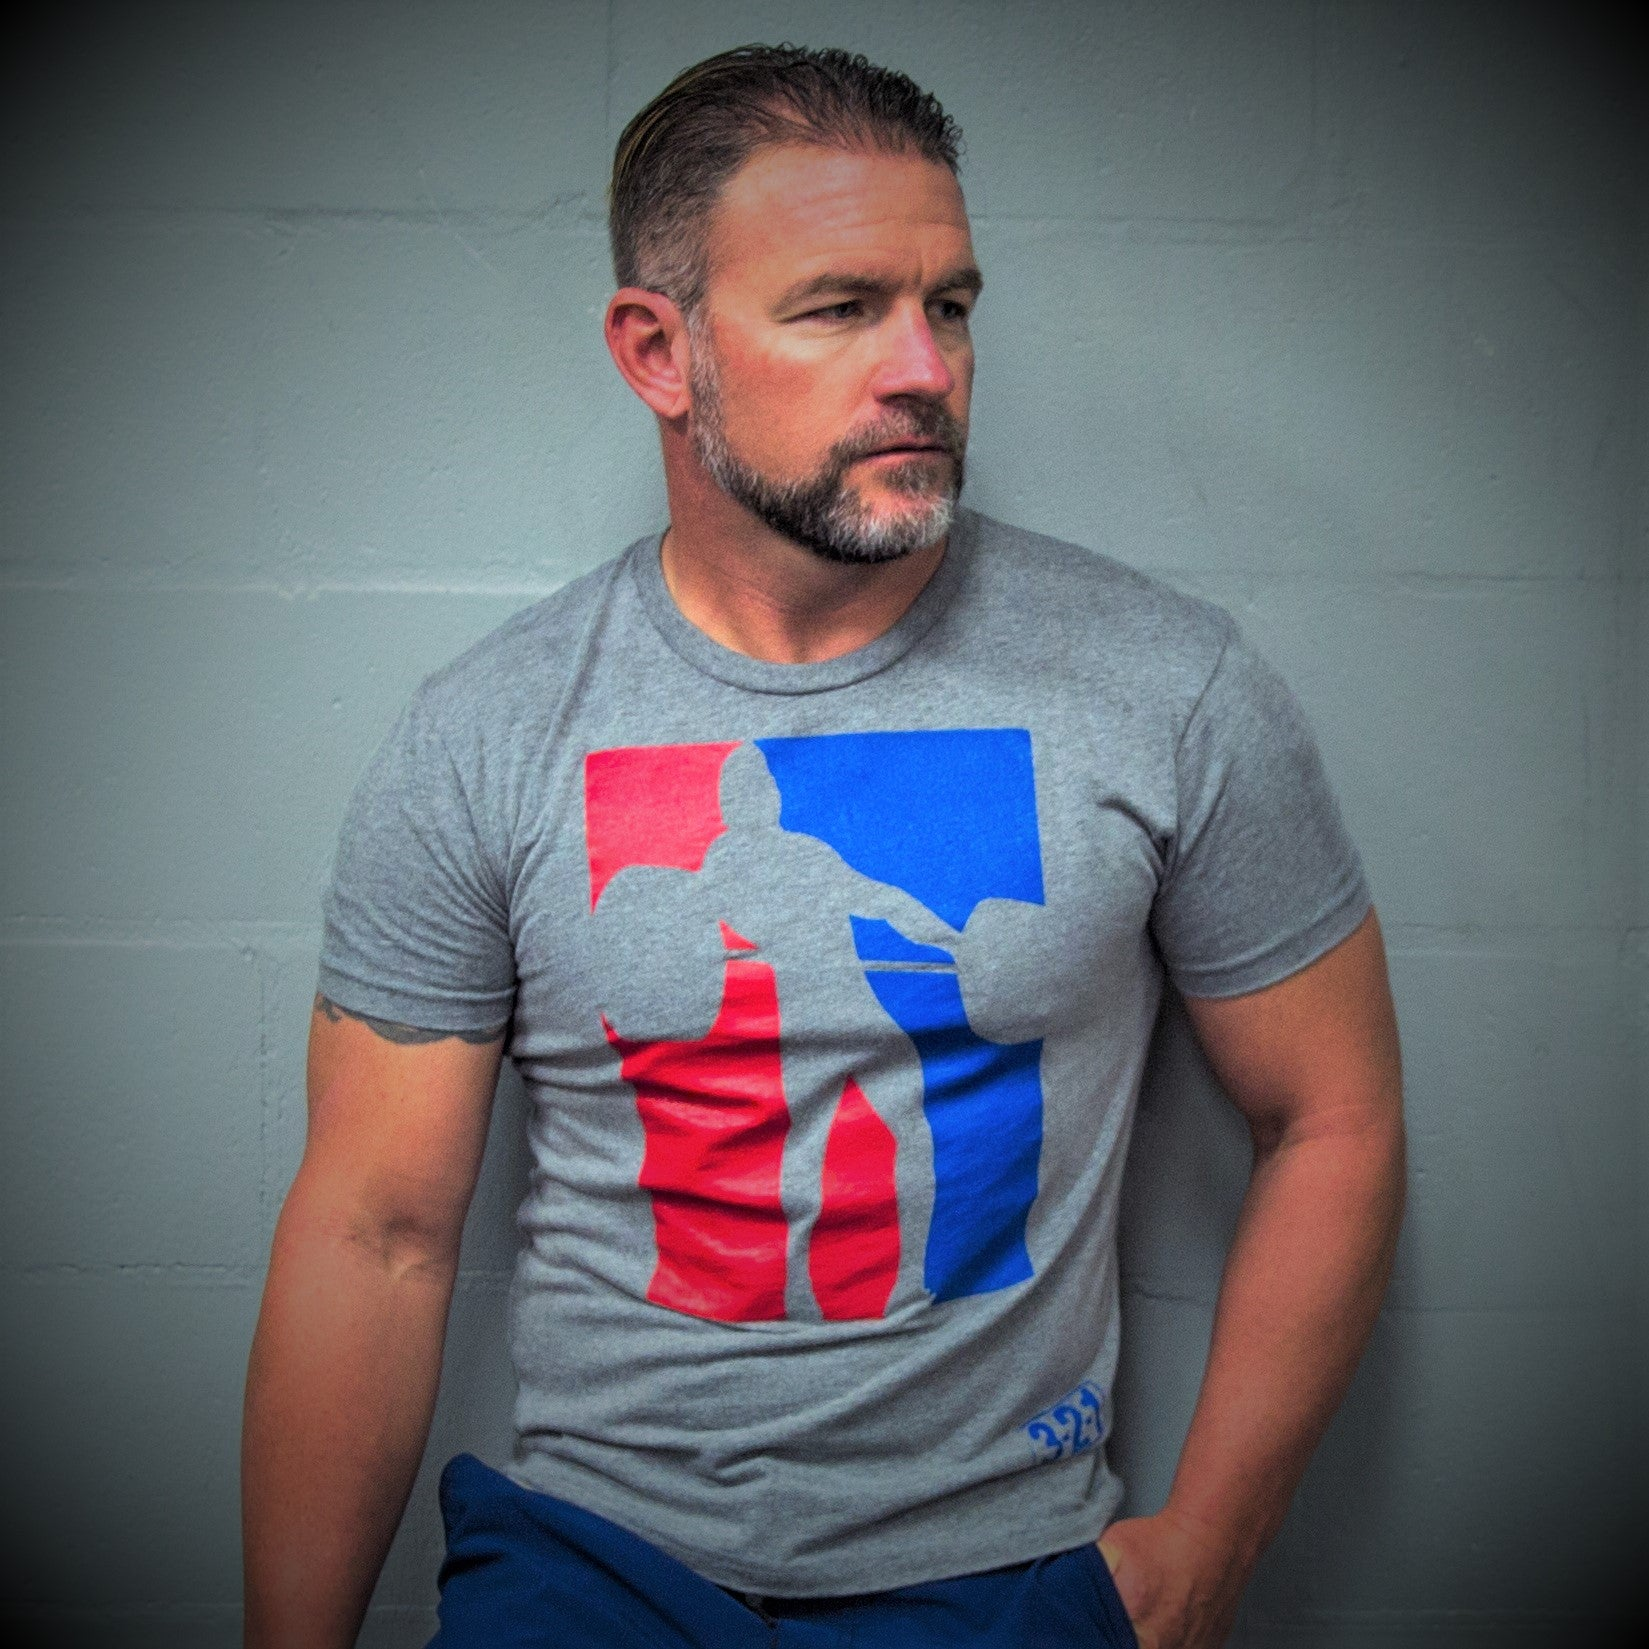 OLY T-Shirt Gray Mens T-Shirt - 321Apparel - crossfit